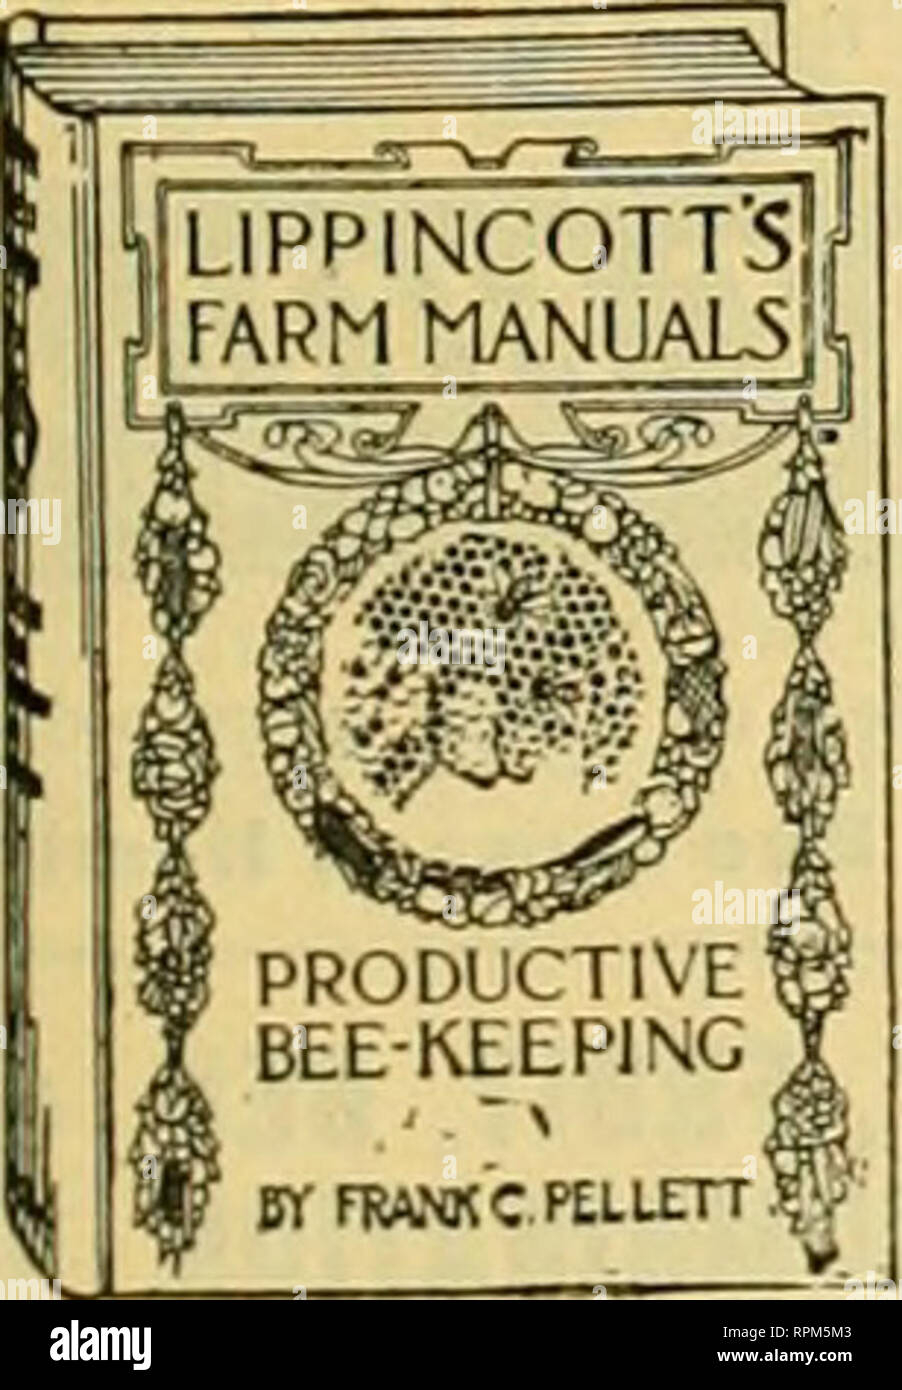 . American bee journal. Bee culture; Bees. PATENTED WRIGHT'S FRAME-WIRING DEVICE of Most rapid in use. Save in one day. Tighter wires, no kinks, no sc hands. Price, $2.5C, postpaid in U. S. A. G. W. Wright Company, Azusa, Calif THE FAMOUS DAVIS GOLDENS And get big yields from gentle bees. Write for Circular and Price List. BEN G. DAVIS, Spring Hill, Tennessee. Productive Beekeeping By FRANK C. PELLETT. Frontispiece in color ; 134 illustrations ; 316 pages ; handsome and durable cloth binding. A Practical Book for The Practical Bee Man Price, Postpaid, $1.75 AMERICAN BEE JOURNAL Hamilton, Illin - Stock Image